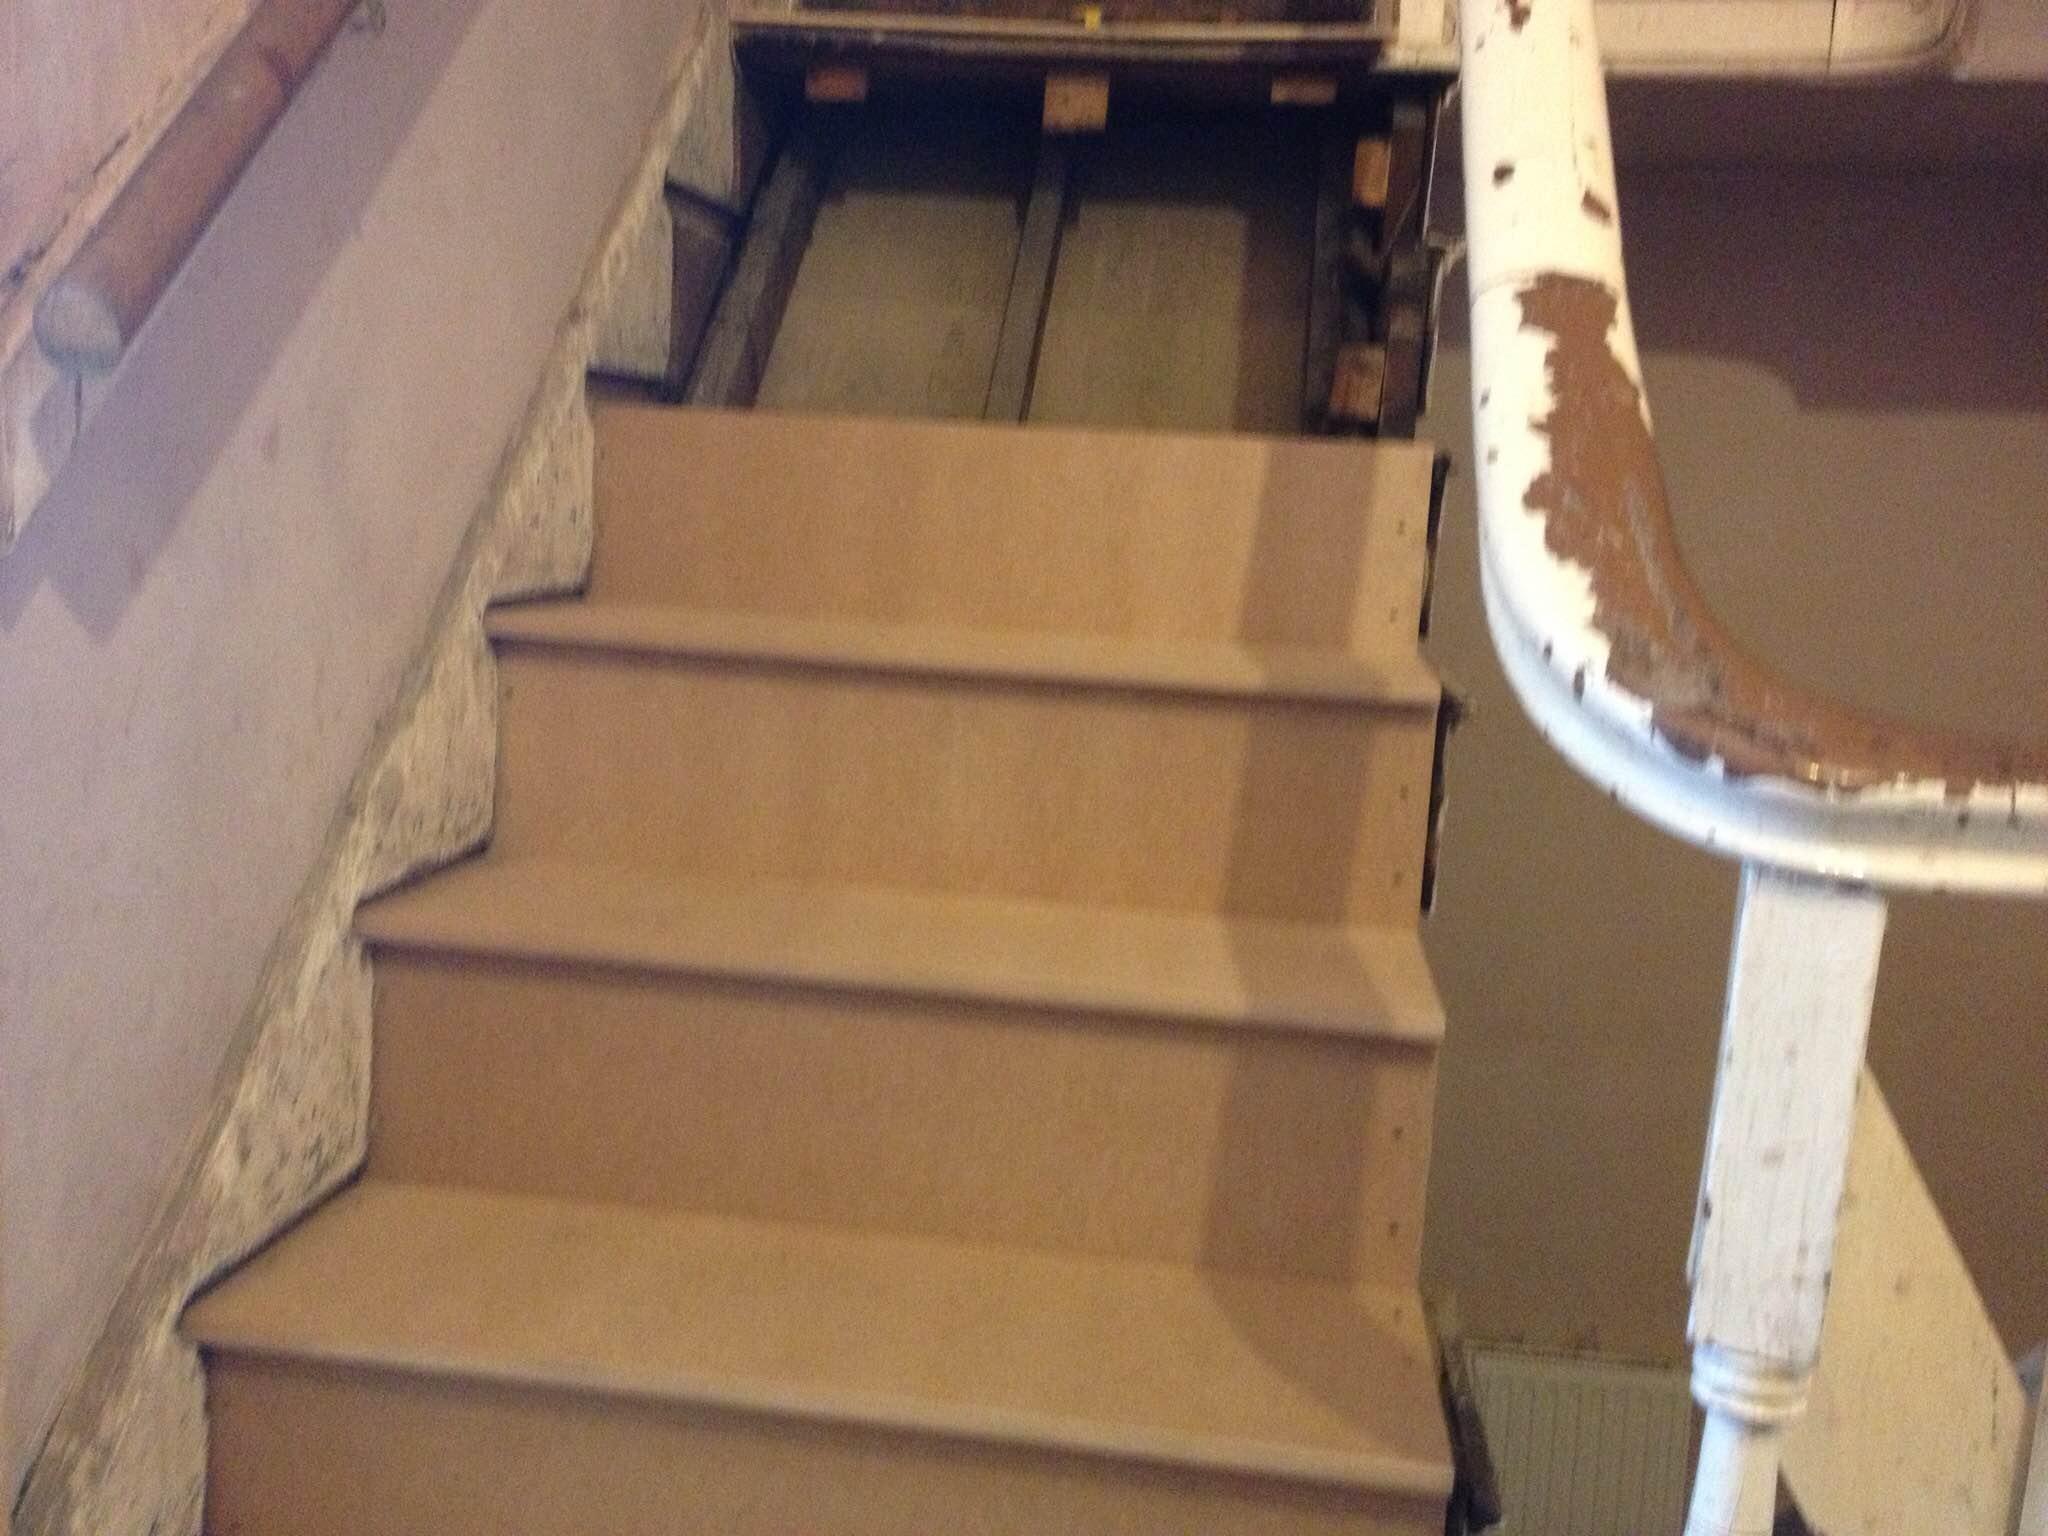 wooden staircases repair hull